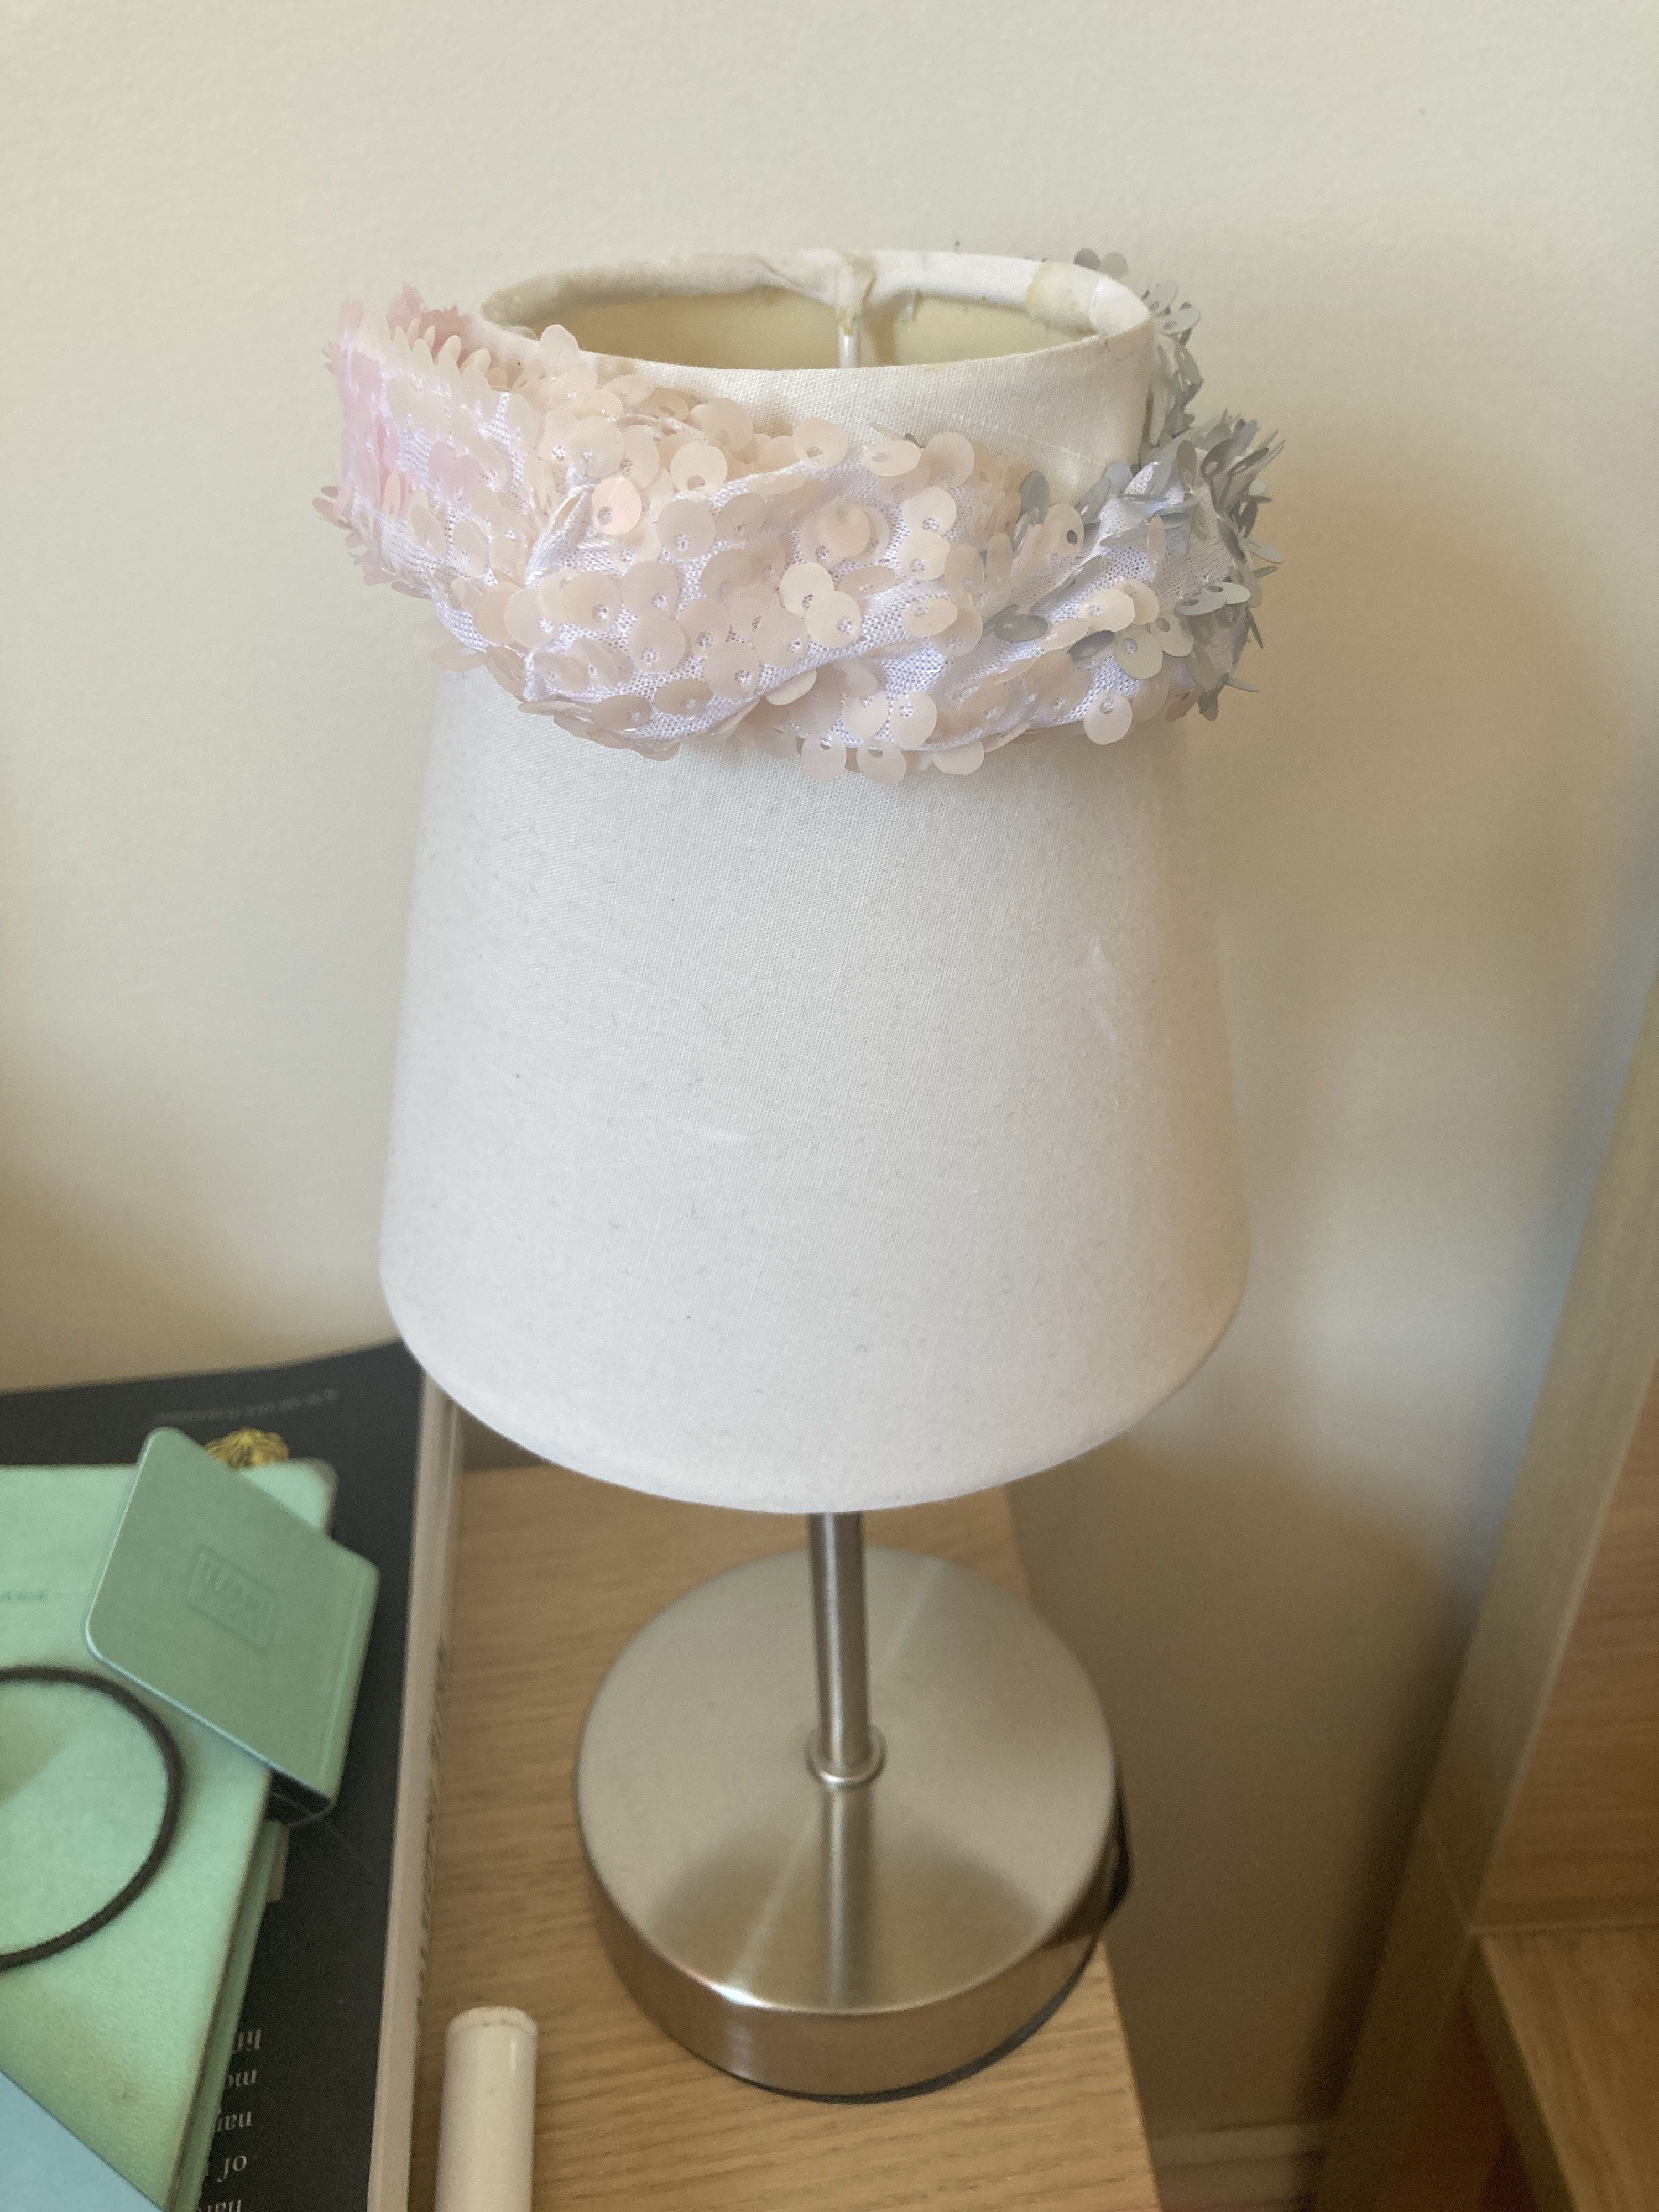 A small desk lamp with a sparkly scrunchie on top